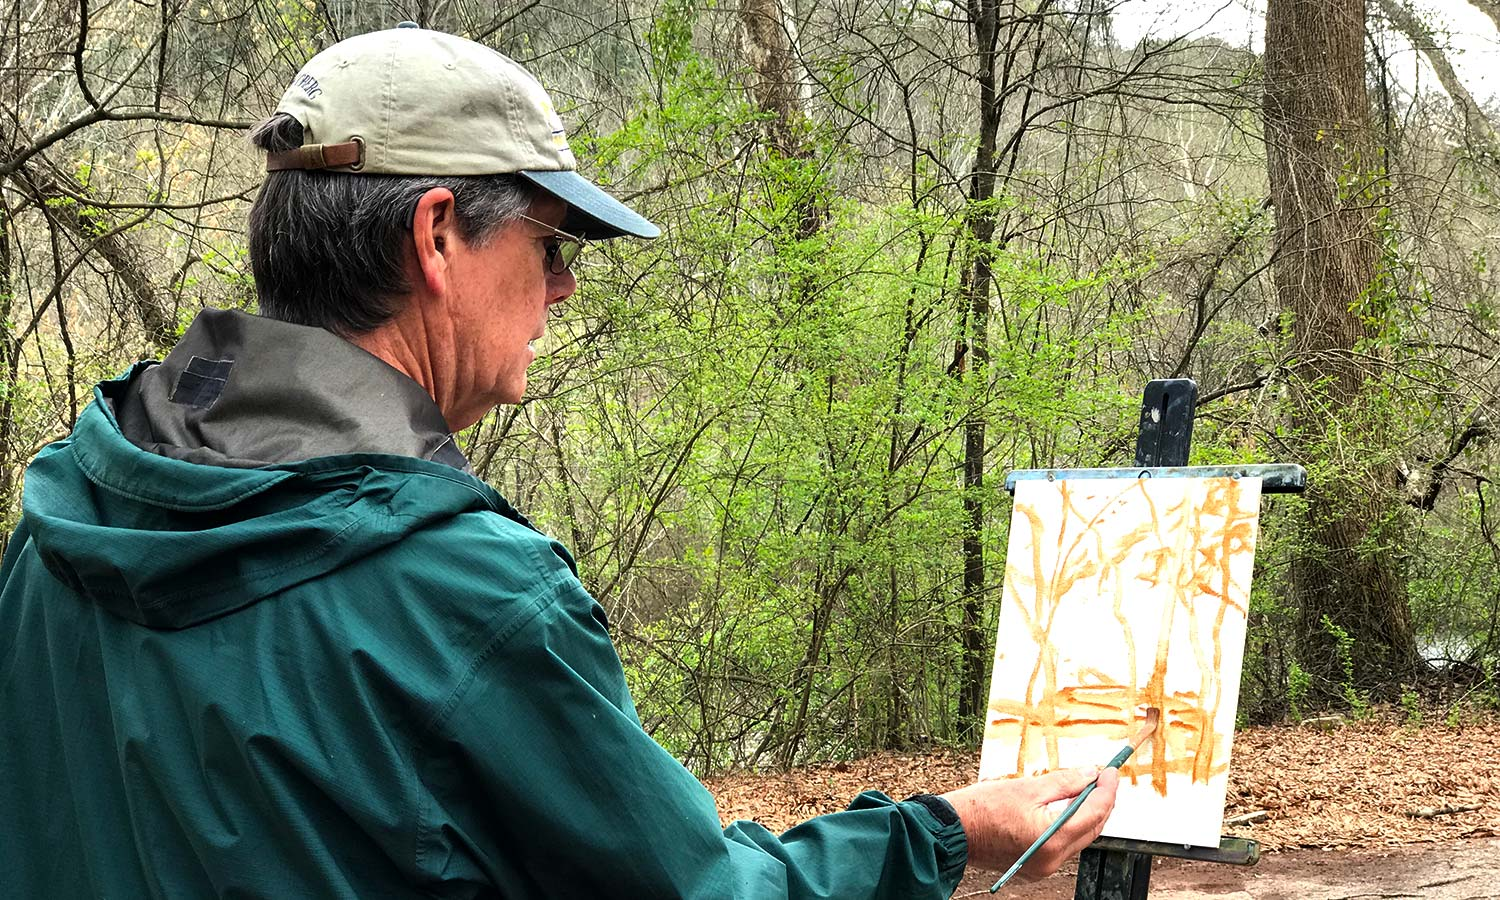 Artist Ralph Oberg begins a plein air painting during a workshop at Cooper's Furnace, near Catersville, Georgia.